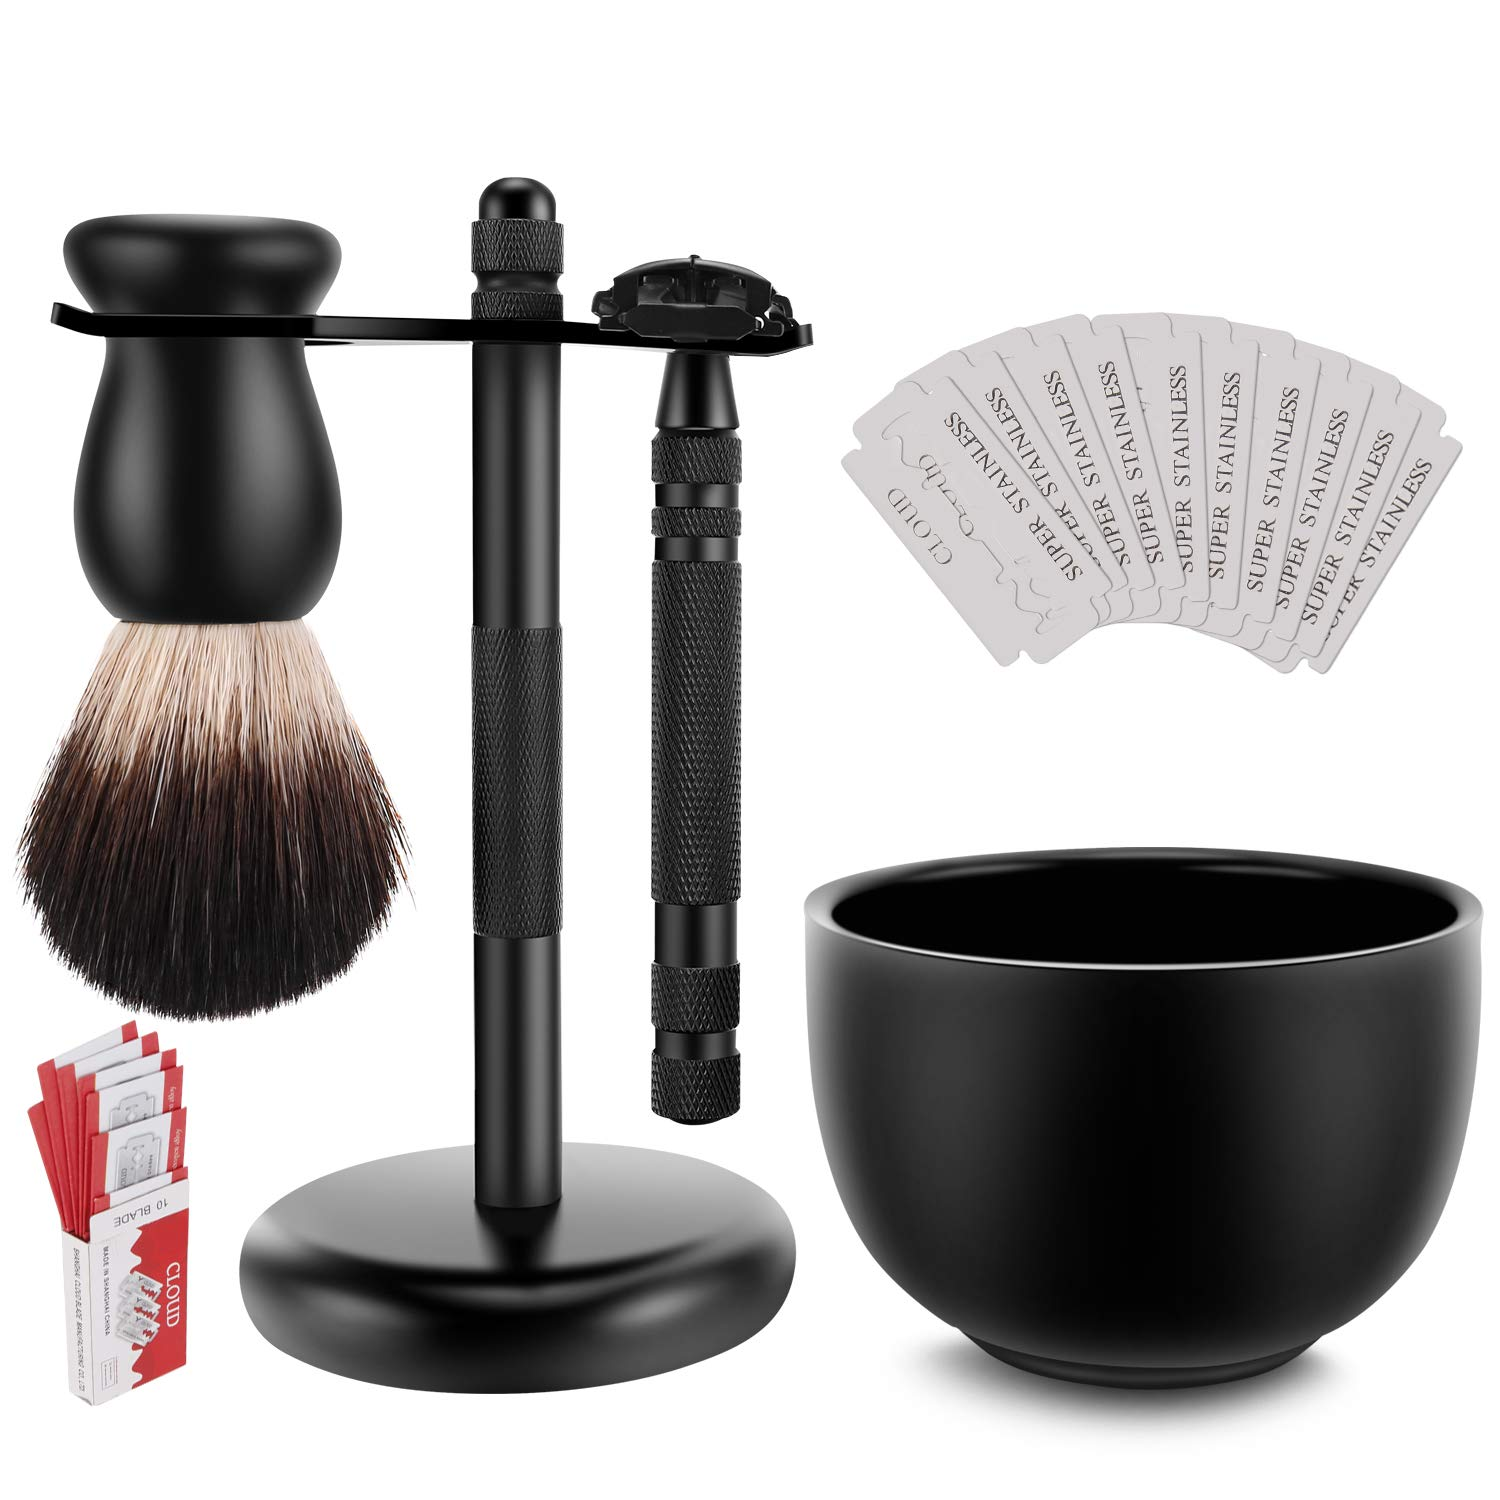 Amazing Safety Razor Shave Kit - Mysterious Black Men's Shaving & Grooming Sets - Butterfly Open Safety Razor,Friendly Brush,Great Shaving Stand,Shaving Soap Bowl, Super Stainless Blades by PerPro